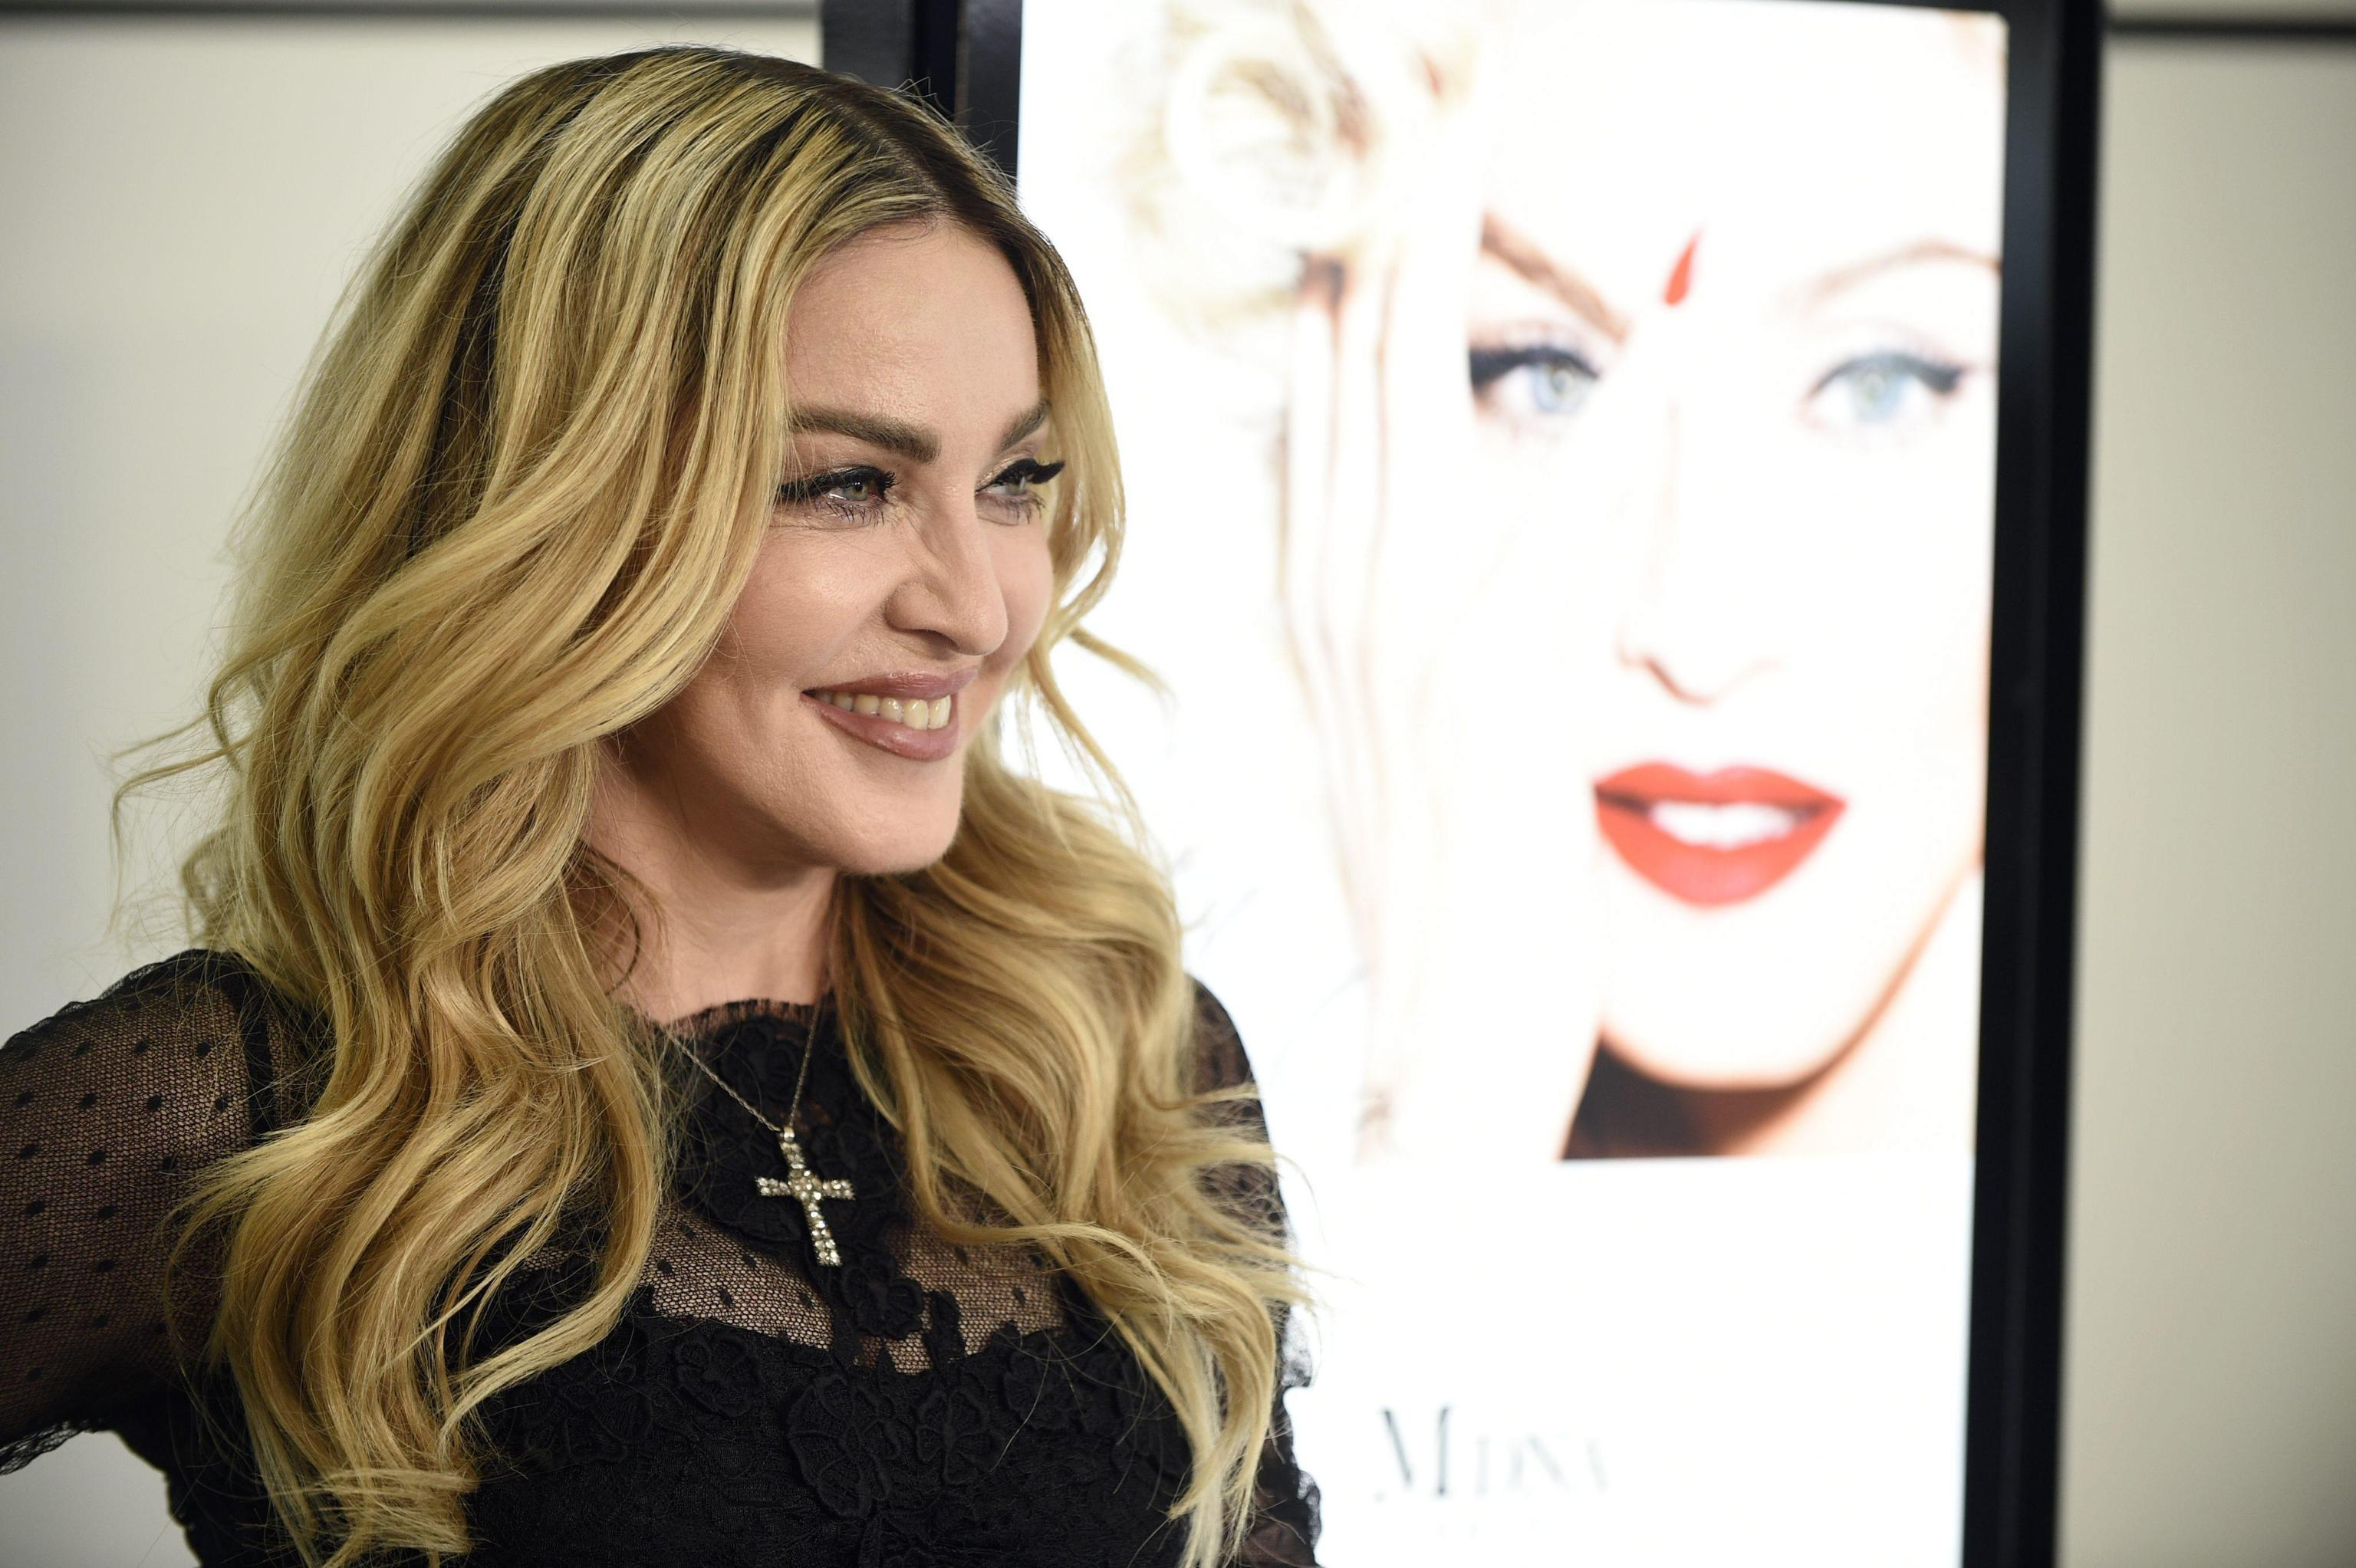 Madonna cerca uno chef privato disposto a viaggiare: lo stipendio è super